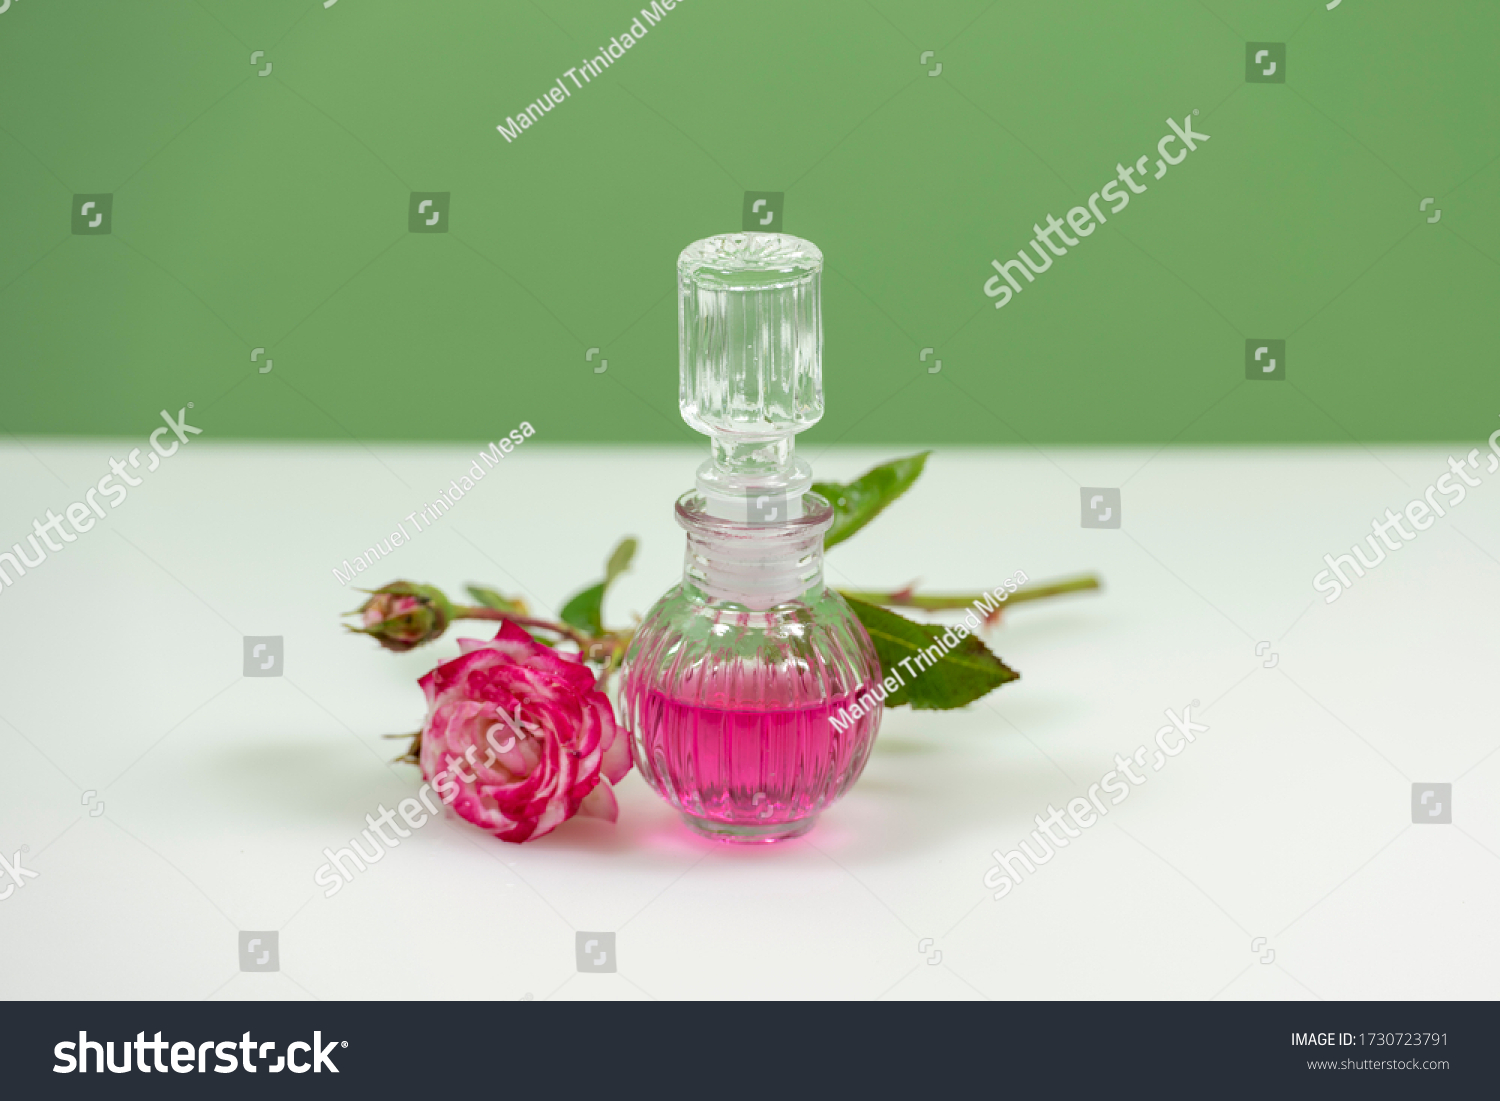 stock-photo-glass-bottle-with-perfume-es